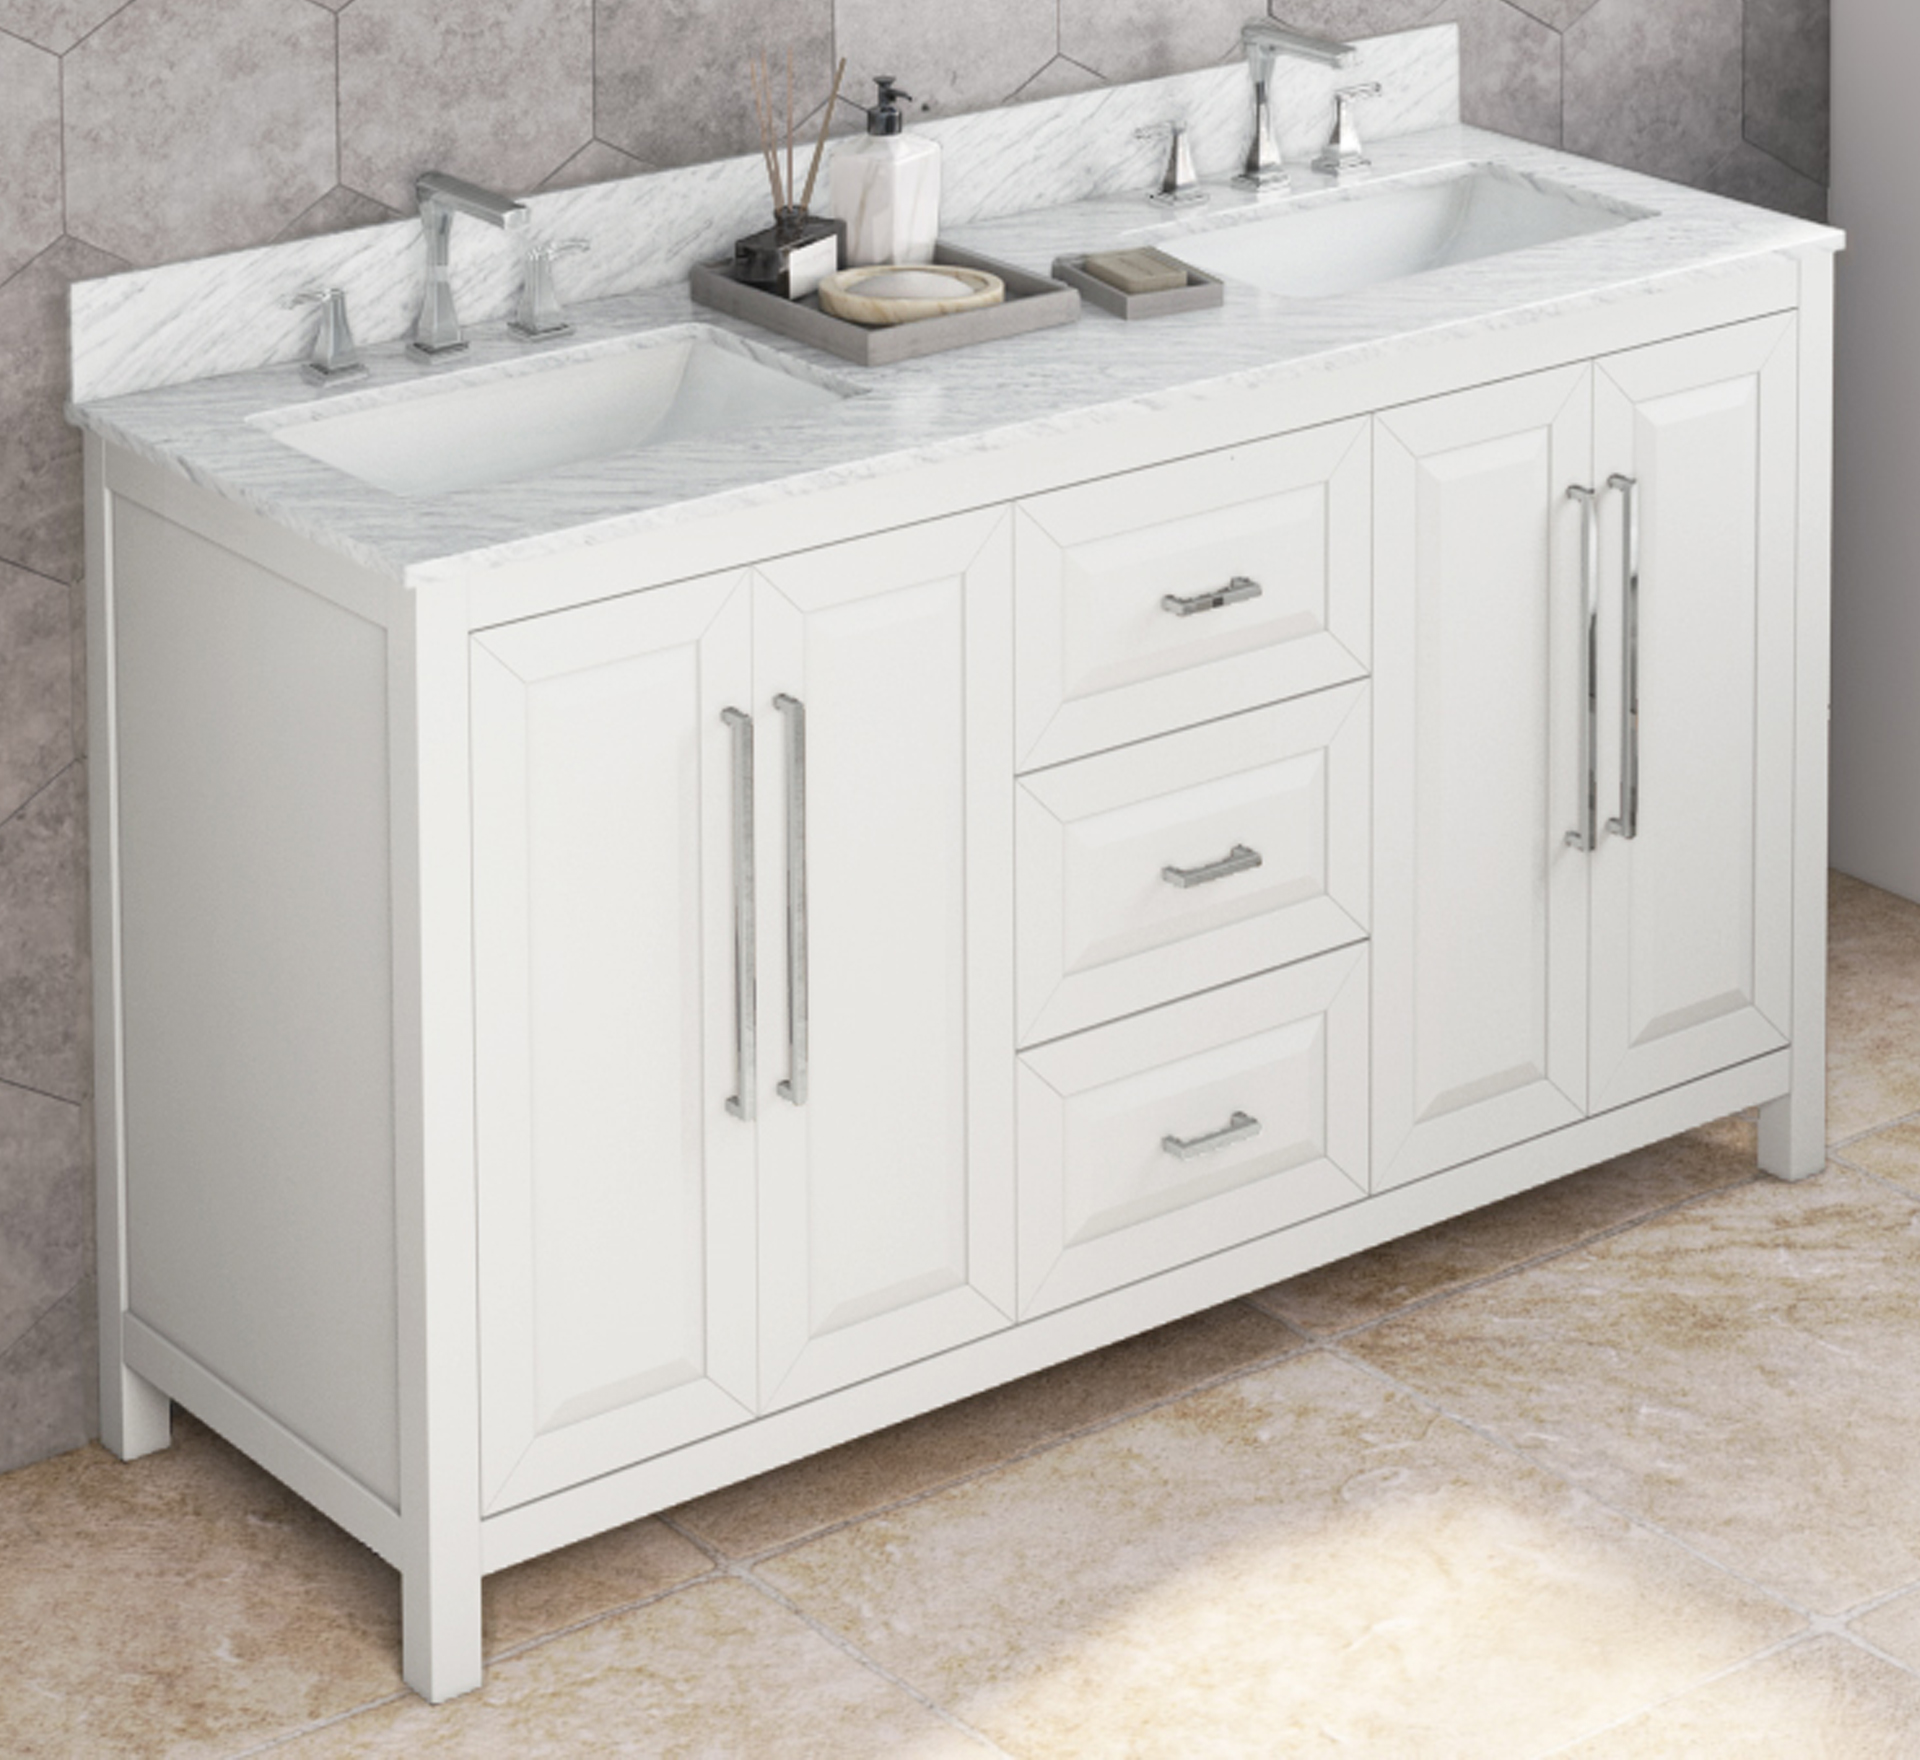 "60"" White Vanity, Double Bowl, White Carrara Marble Vanity Top, Undermount Rectangle Bowl"